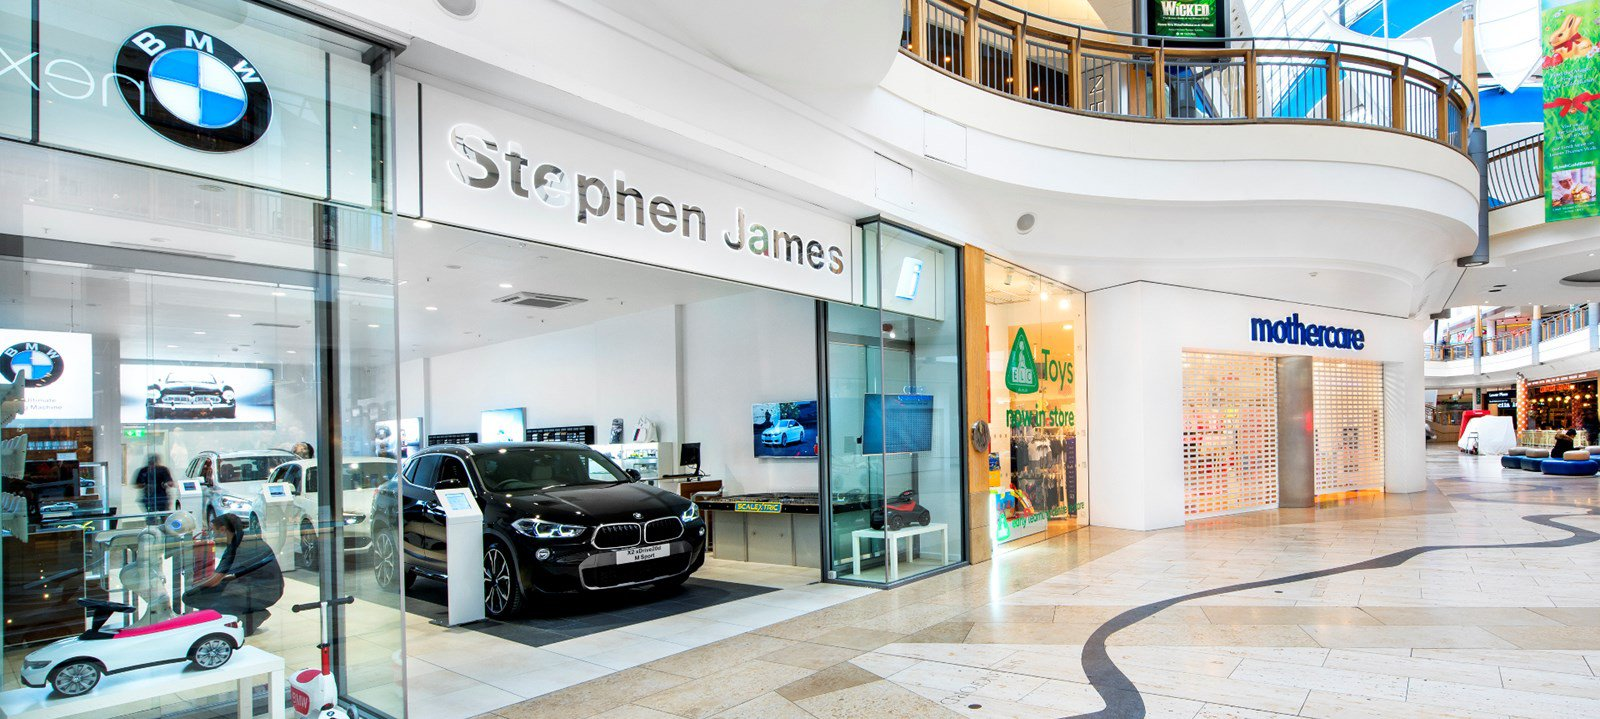 bmw opens first uk urban store for cars luxury retail. Black Bedroom Furniture Sets. Home Design Ideas